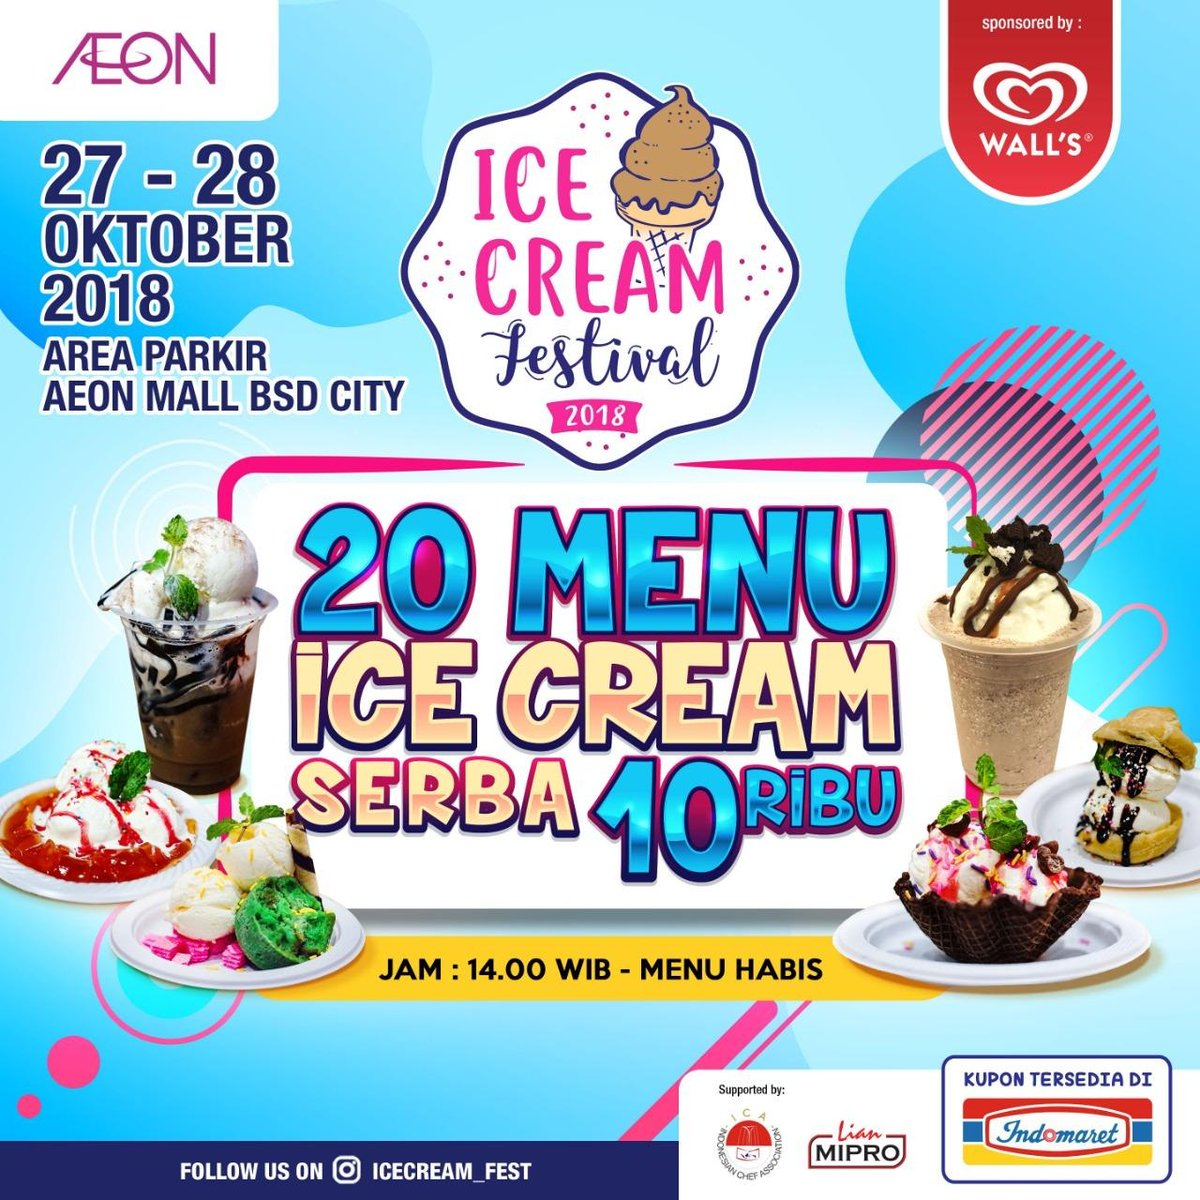 Indomaret - Promo Kupon Ice Cream Festival 2018 AEON Mall BSD City